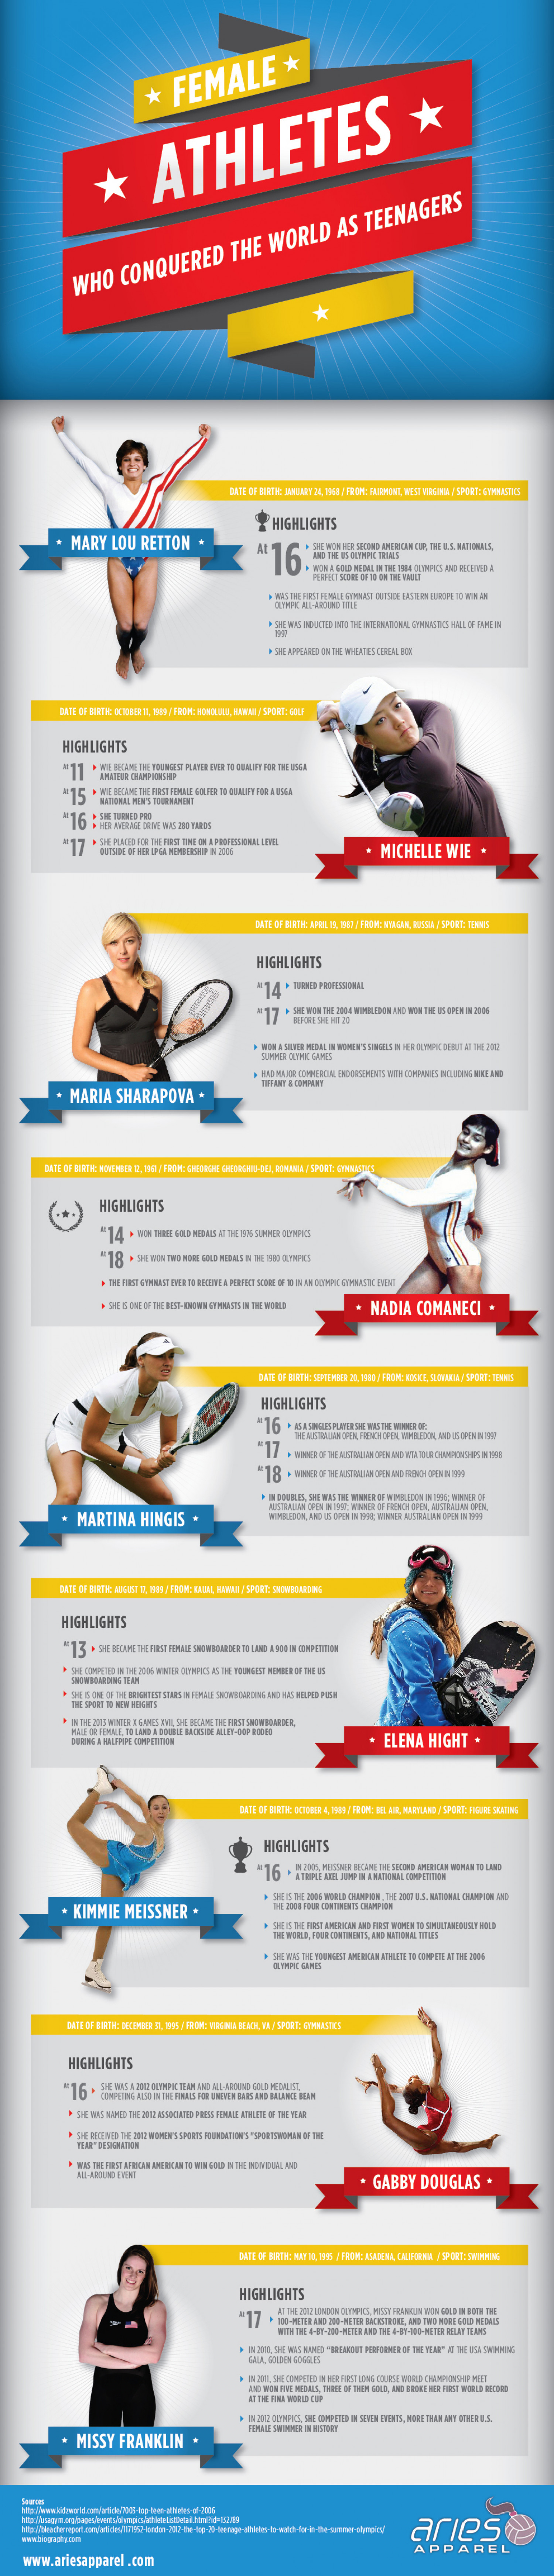 Female Athletes Who Conquered The World As Teenagers Infographic